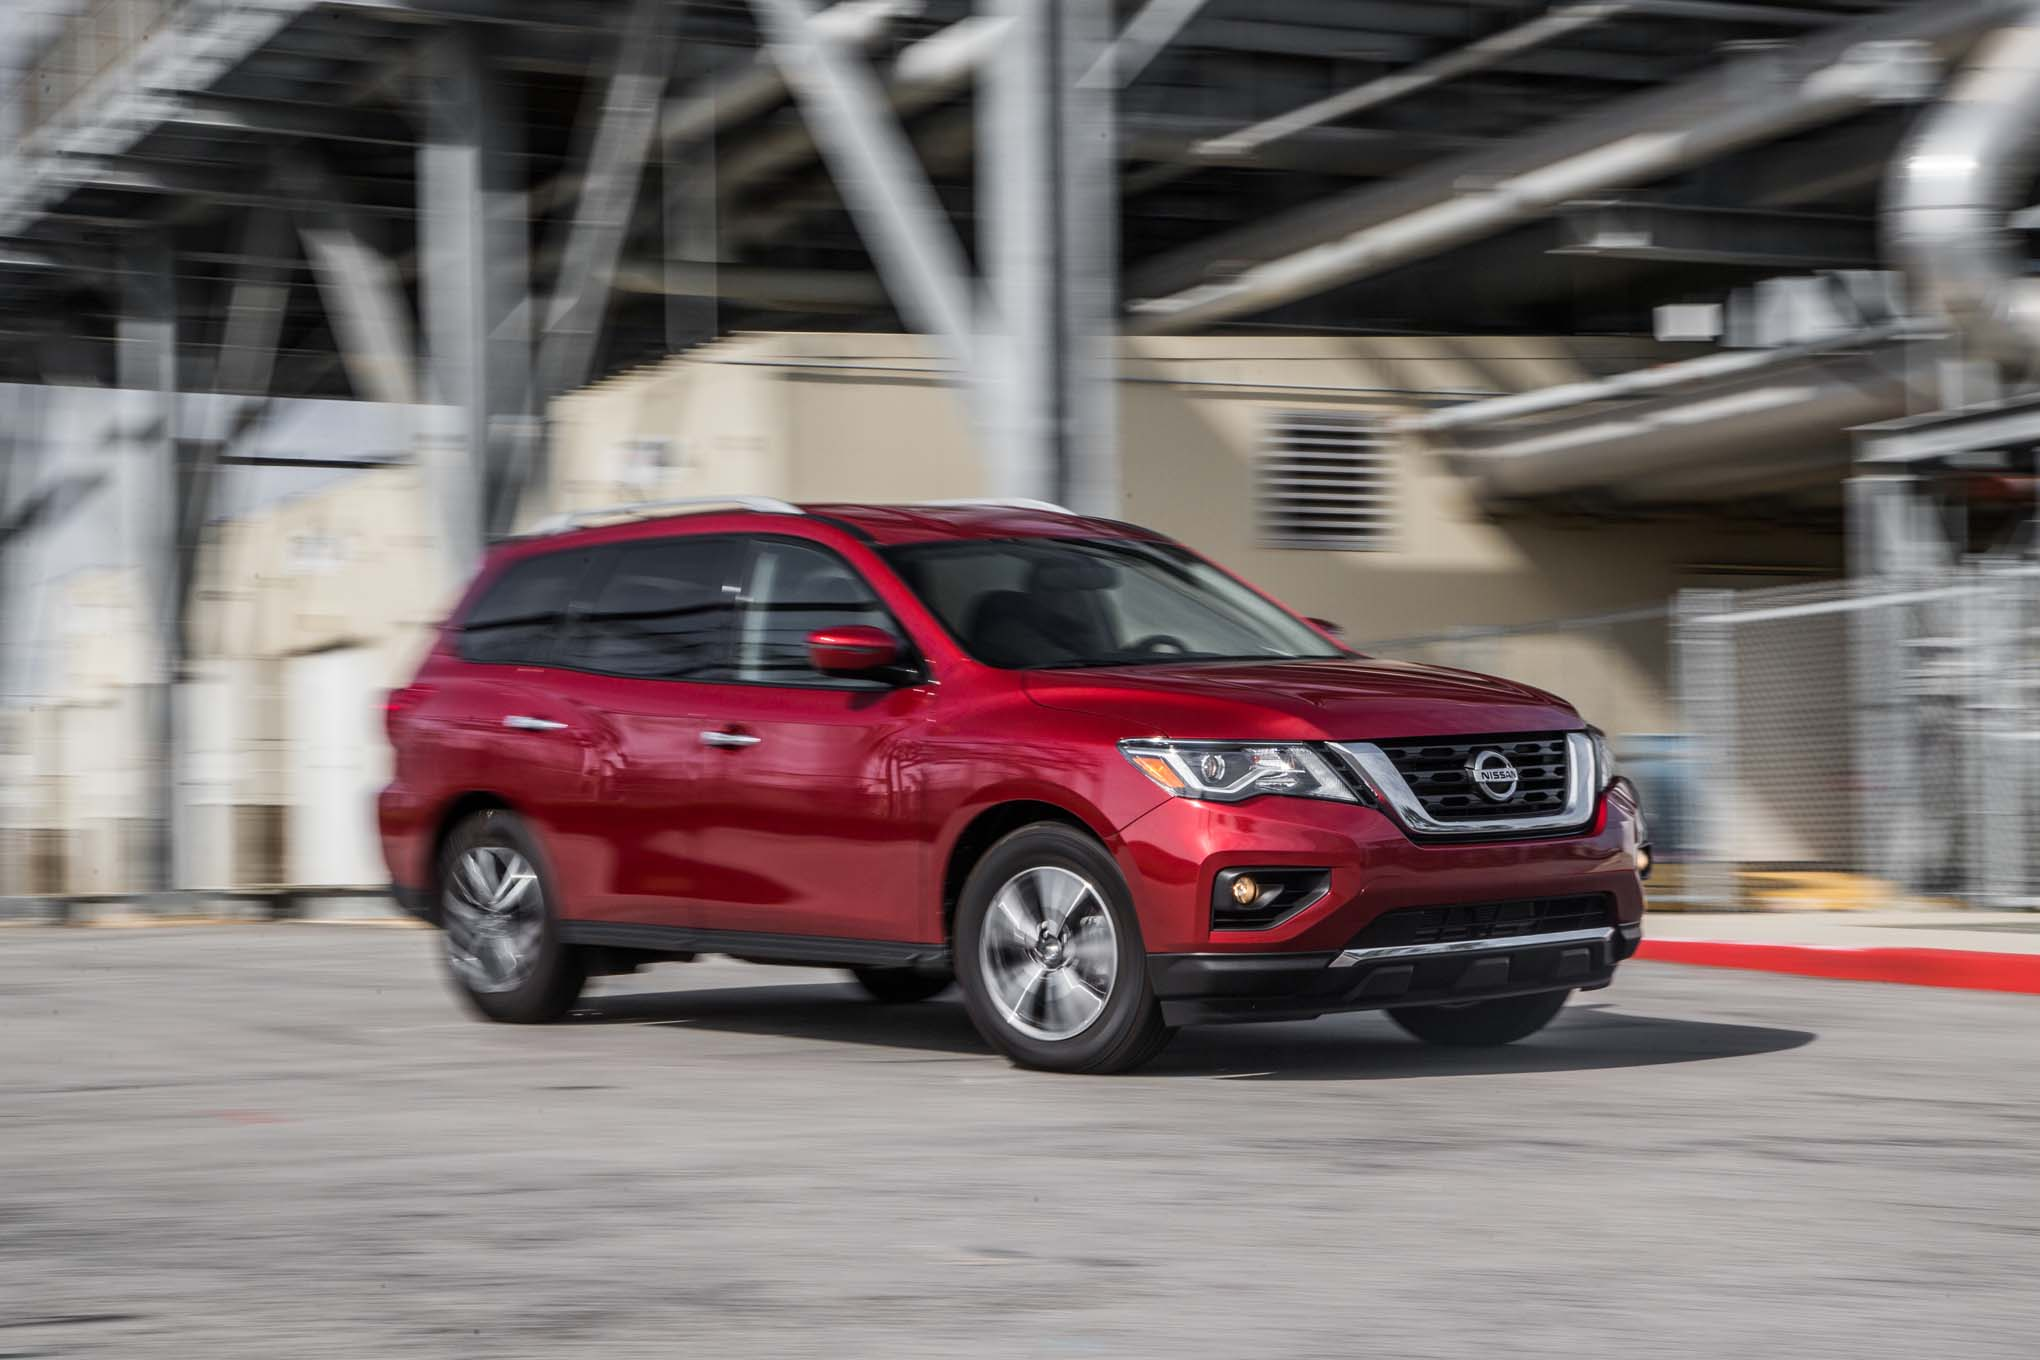 2017 Nissan Pathfinder SV 4WD front three quarter turn 02